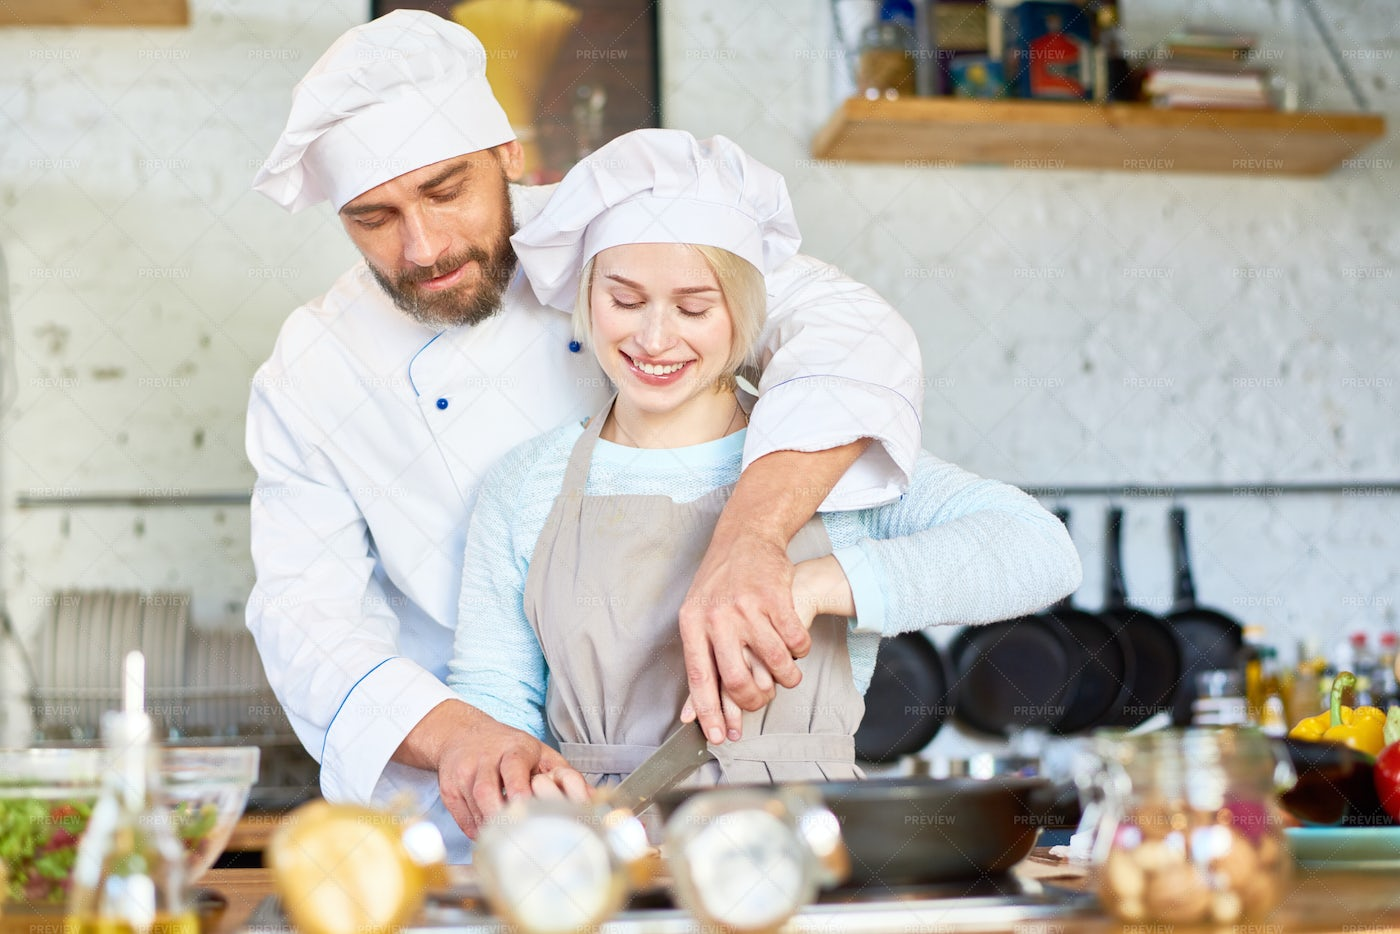 Teamwork Of Professional Chef And...: Stock Photos